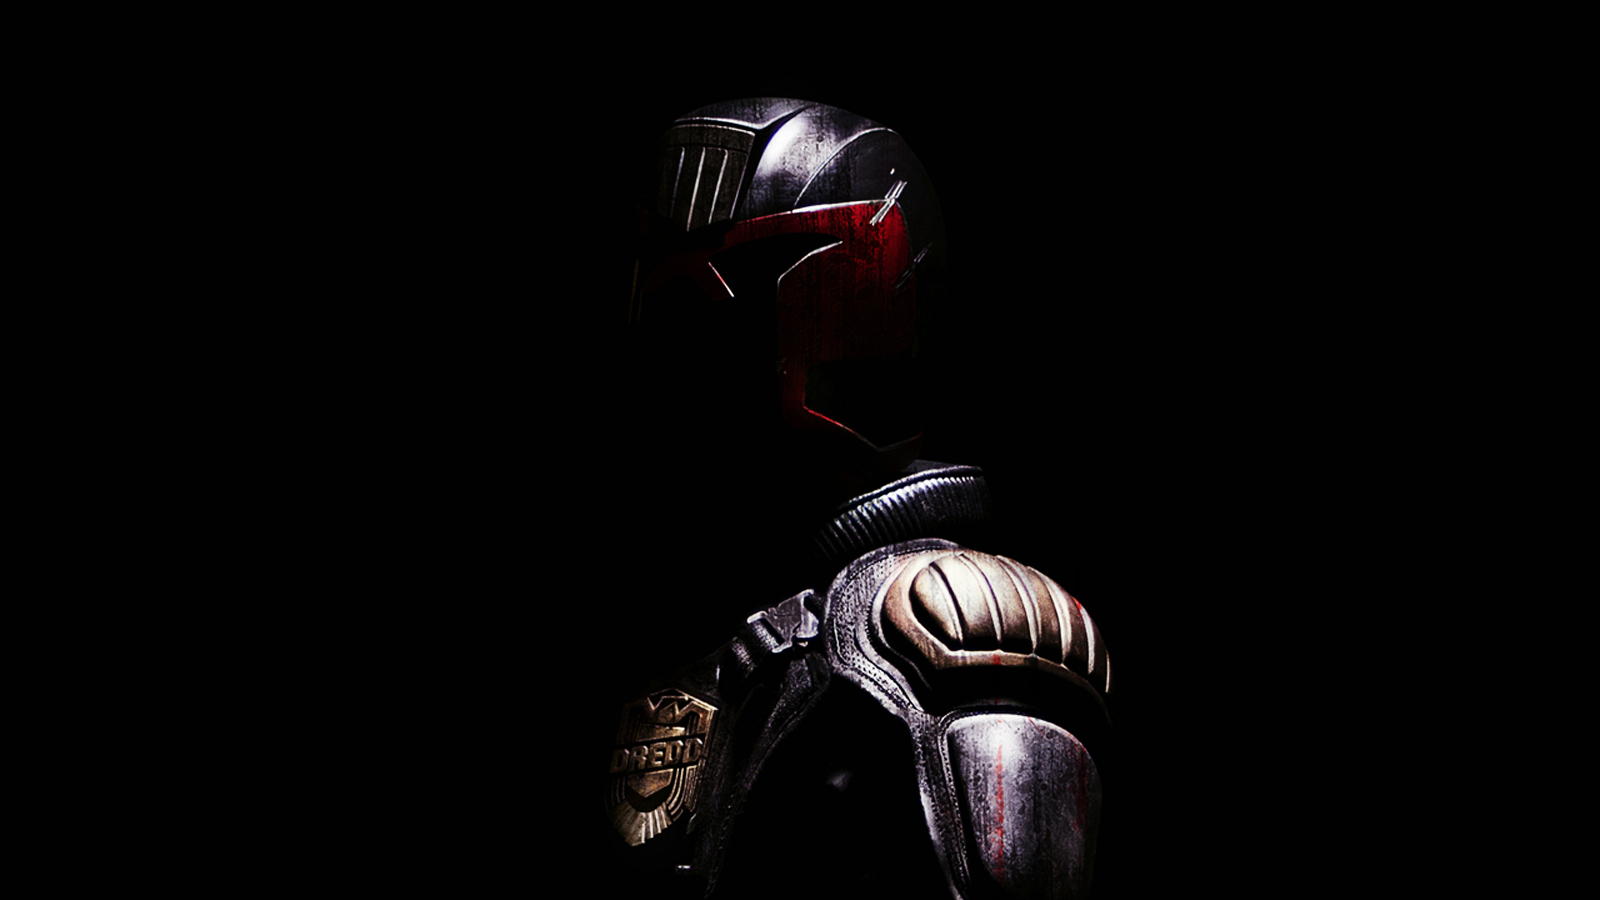 Dredd 3D Movie Poster HD Wallpapers HQ Wallpapers - Free ...